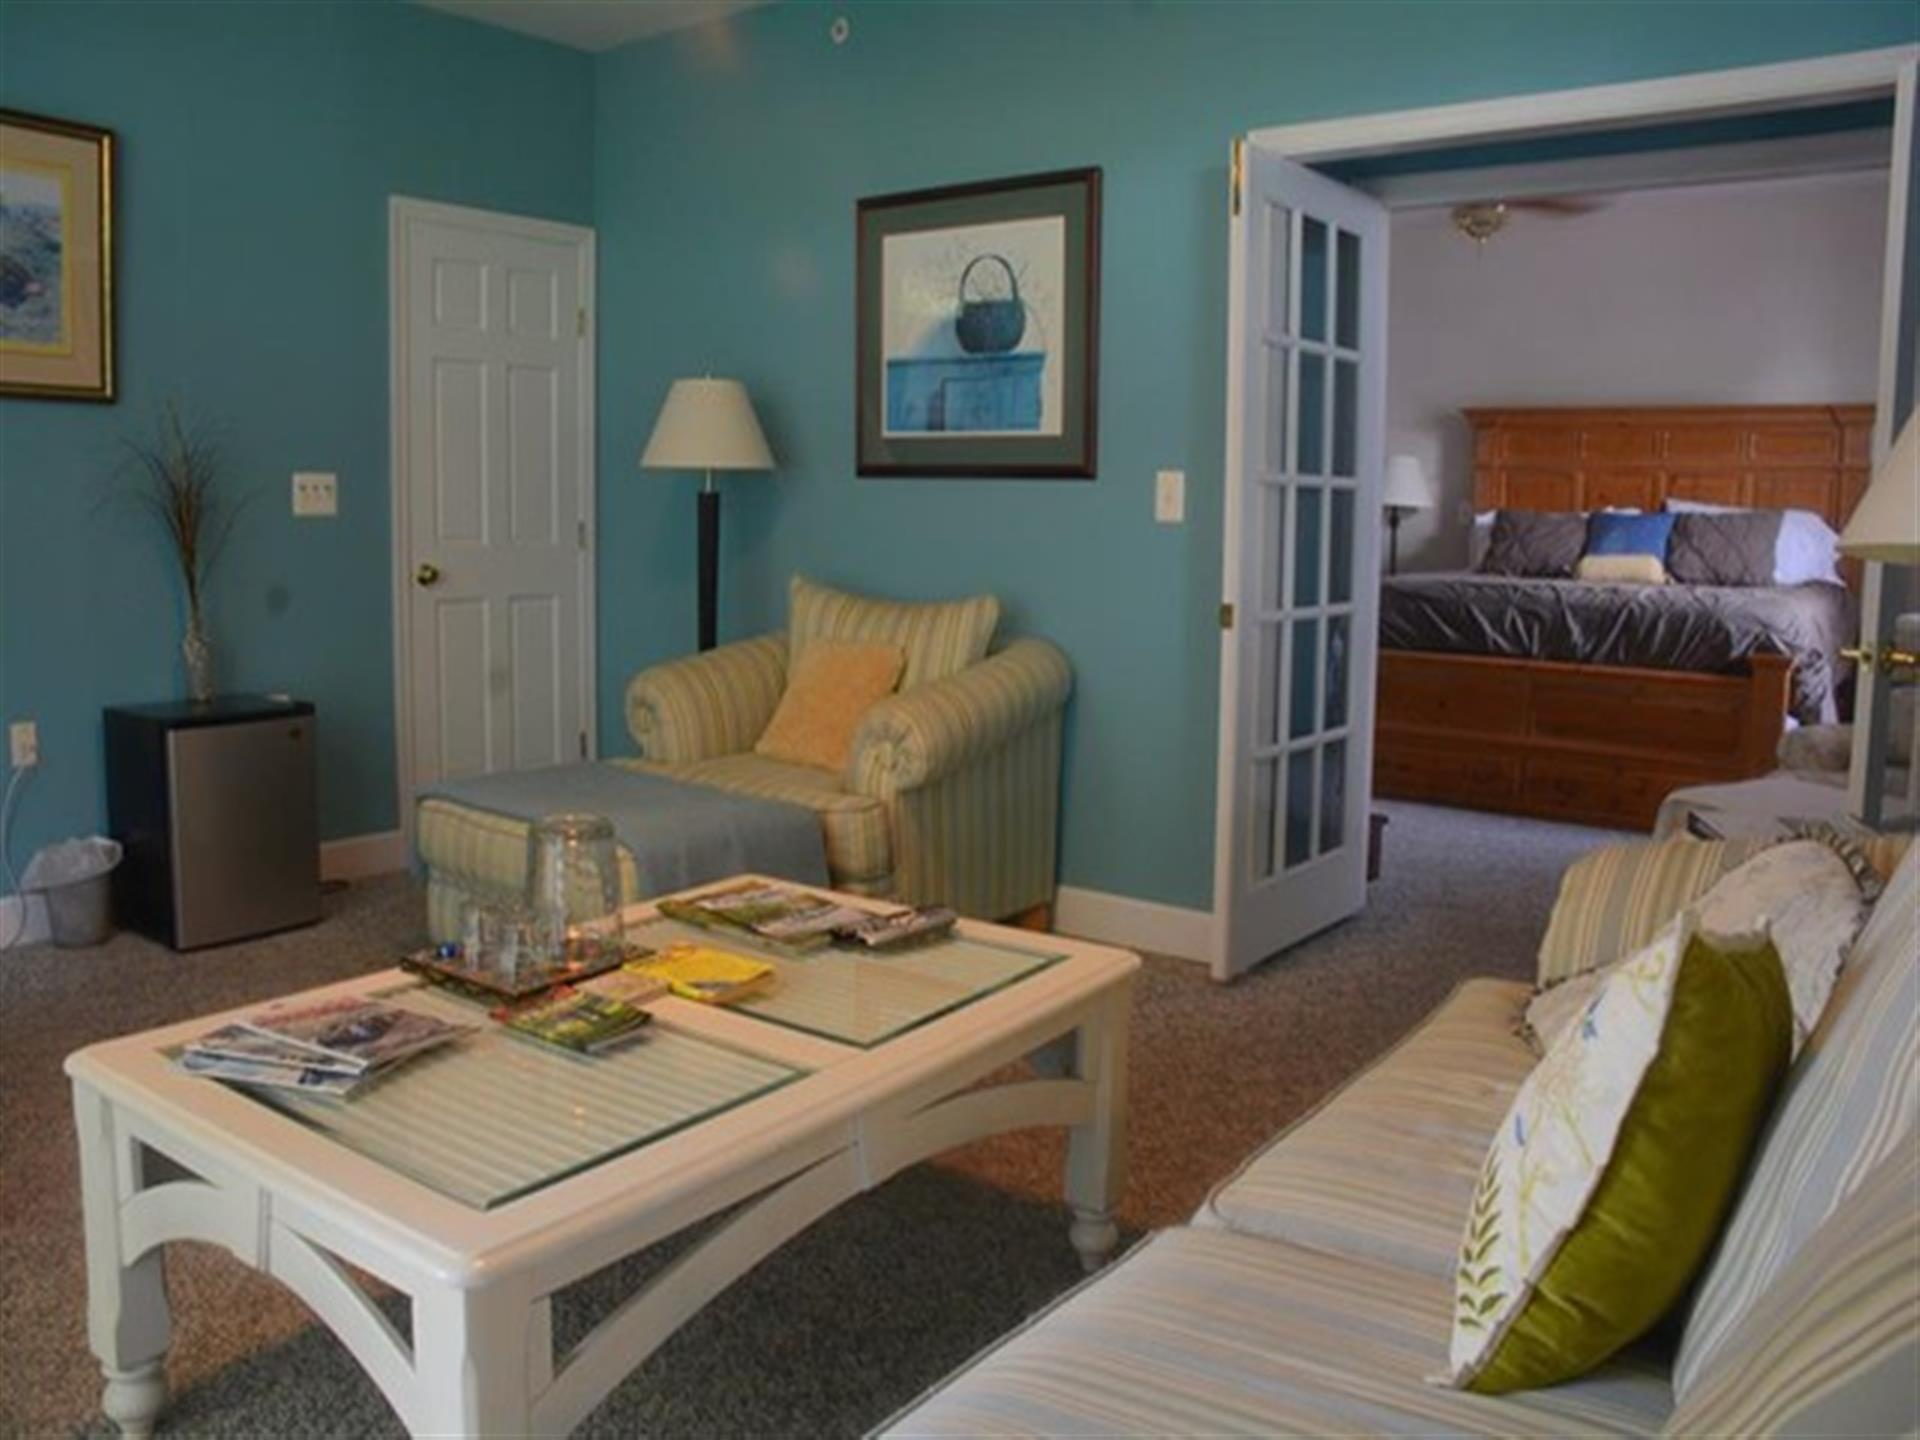 Sitting area in Suite 2. Bright blue colored walls and relaxing beach decor.